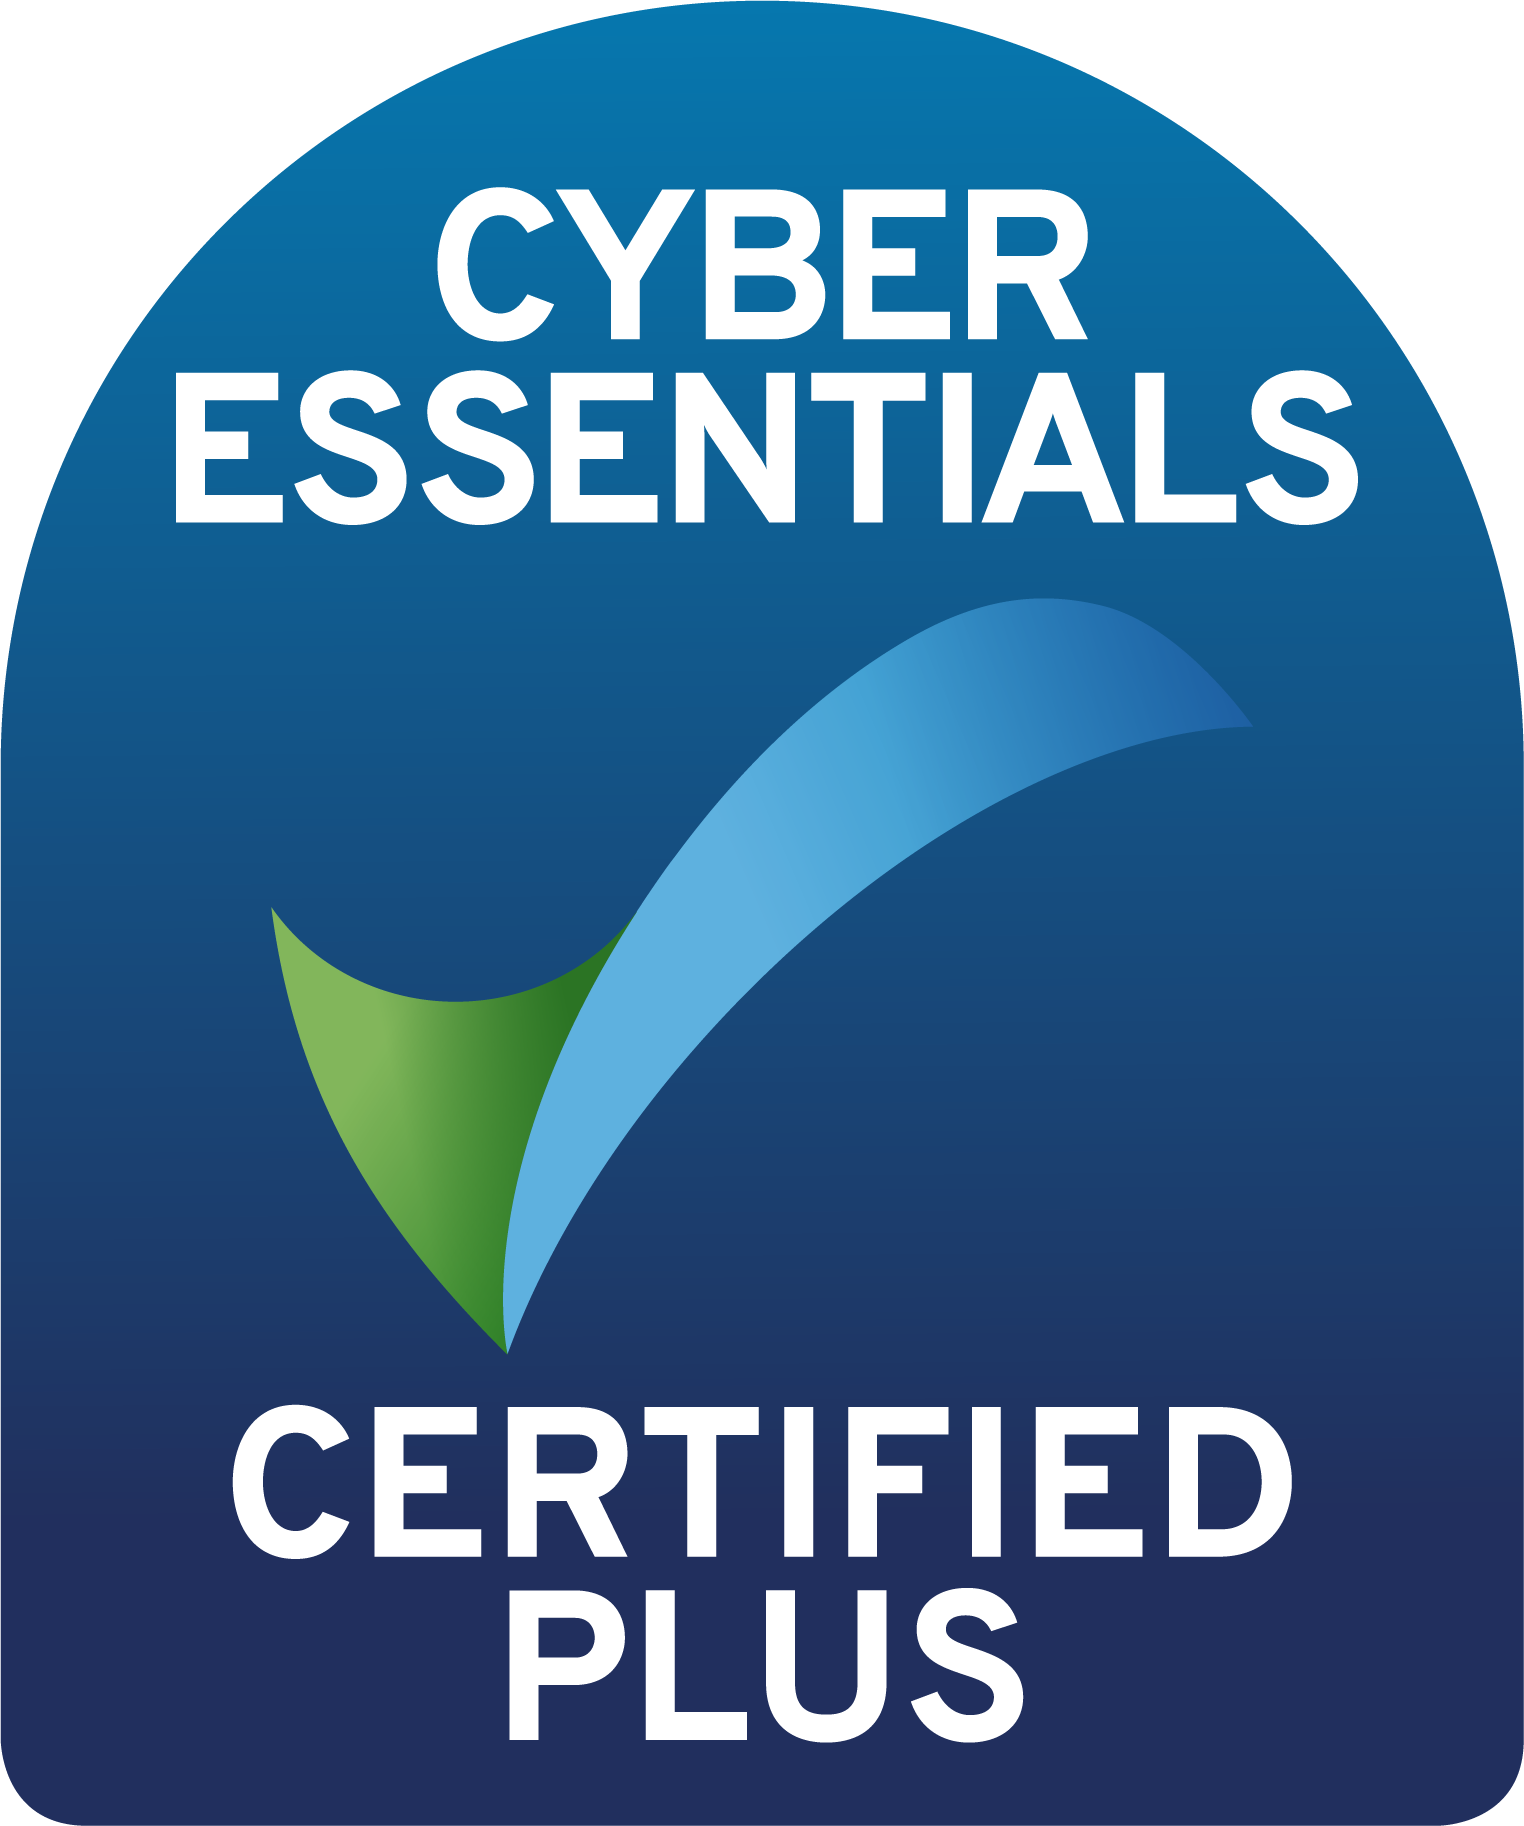 cyberessentials_certification_mark_plus_colour